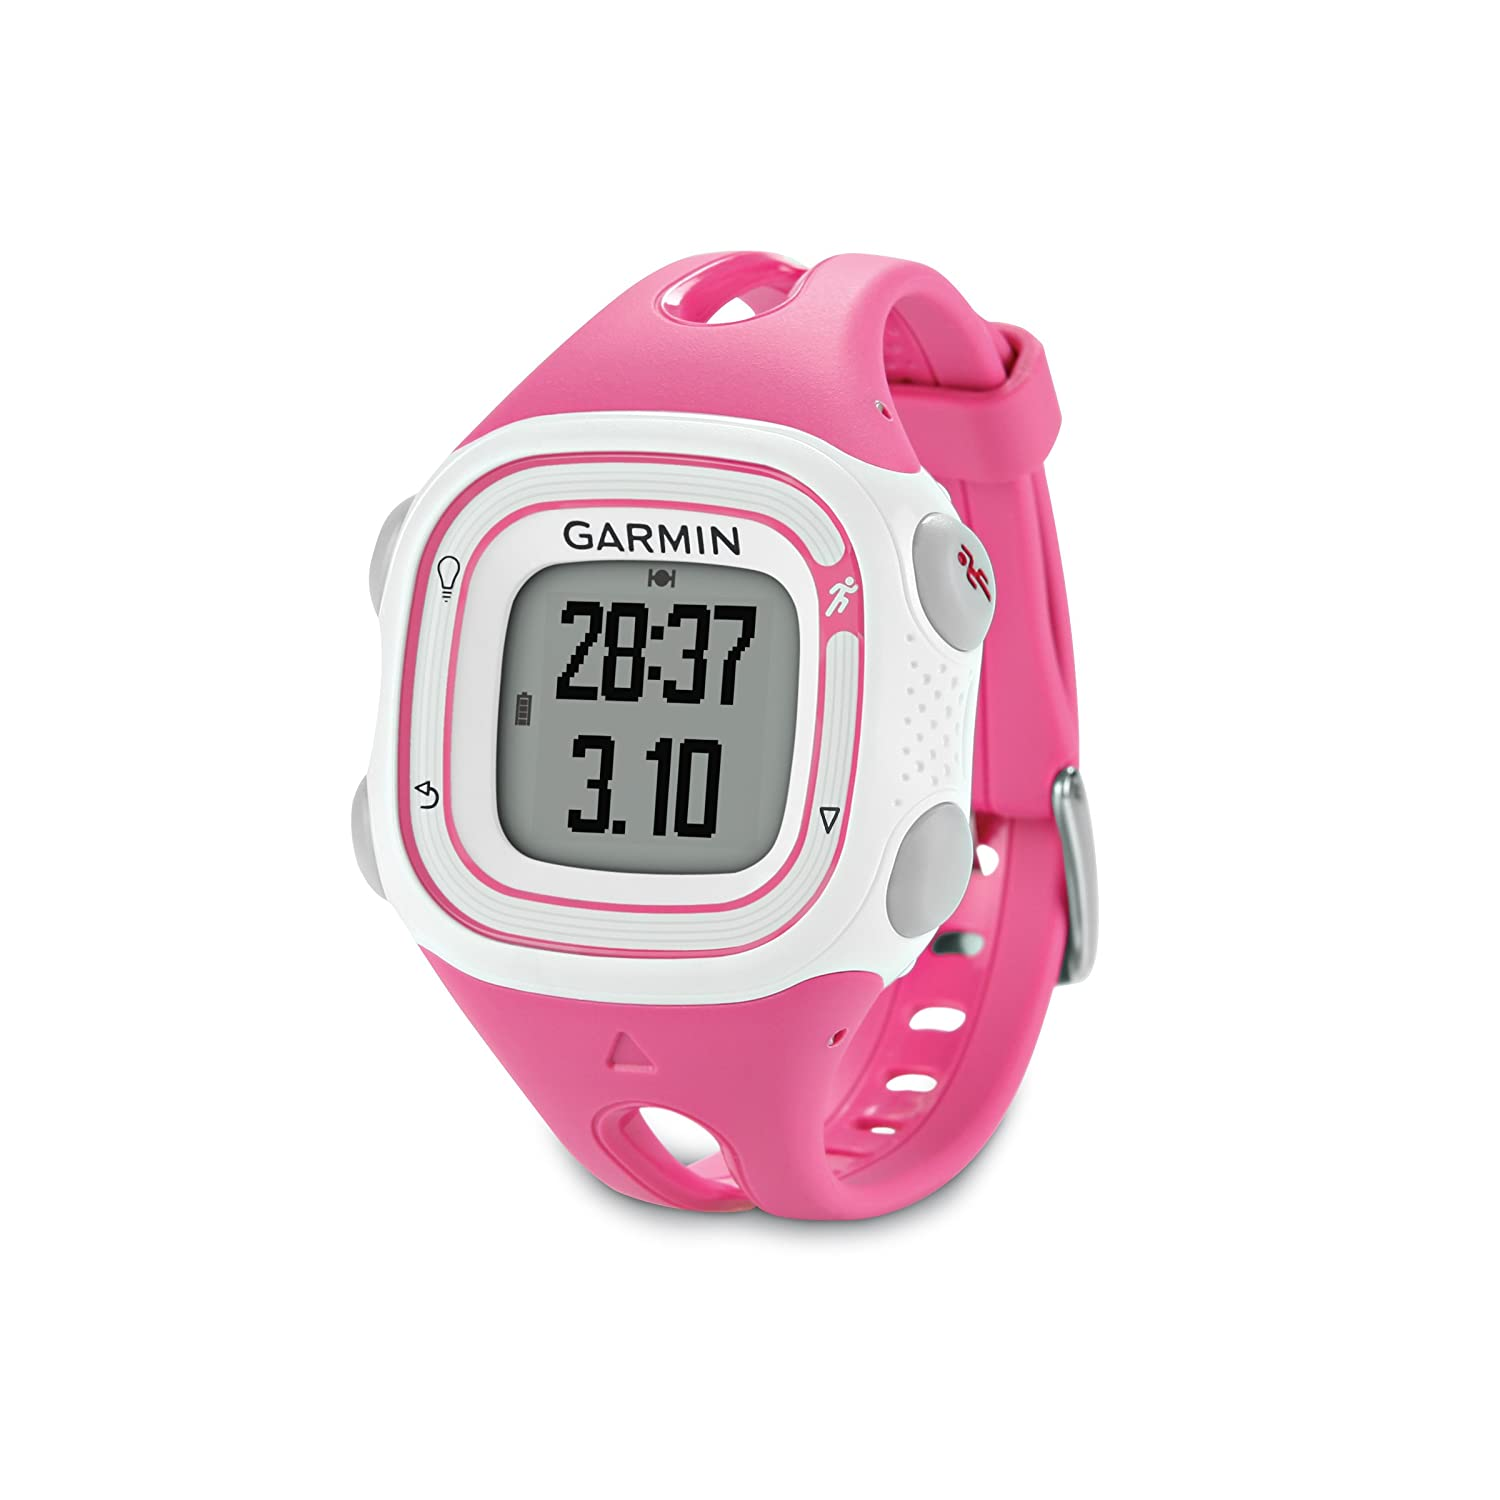 Garmin Forerunner 10 GPS Watch Pink White